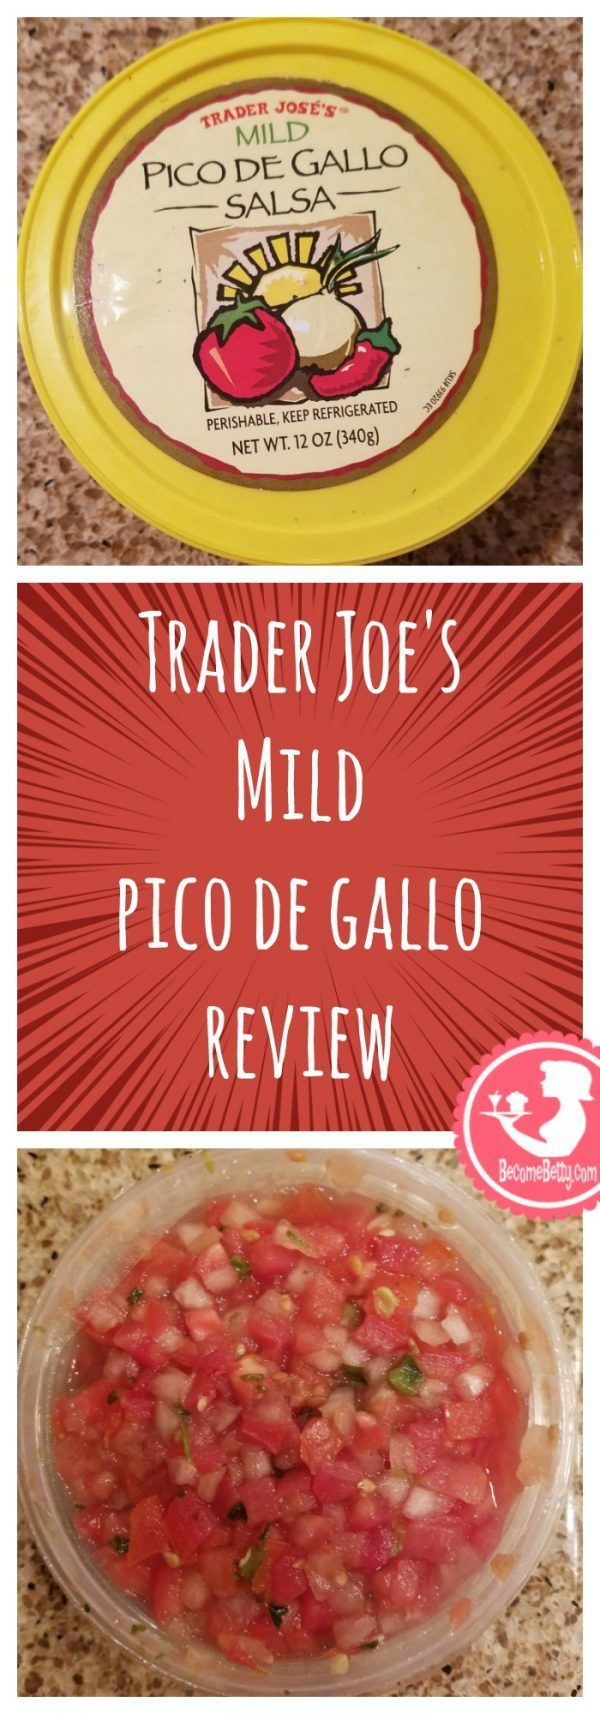 Trader Joe's Mild Pico de Gallo review. Want to know if this is something worth buying from Trader Joe's? All pins link to BecomeBetty.com where you can find reviews, pictures, thoughts, calorie counts, nutritional information, how to prepare, allergy information, price, and how to prepare each product.